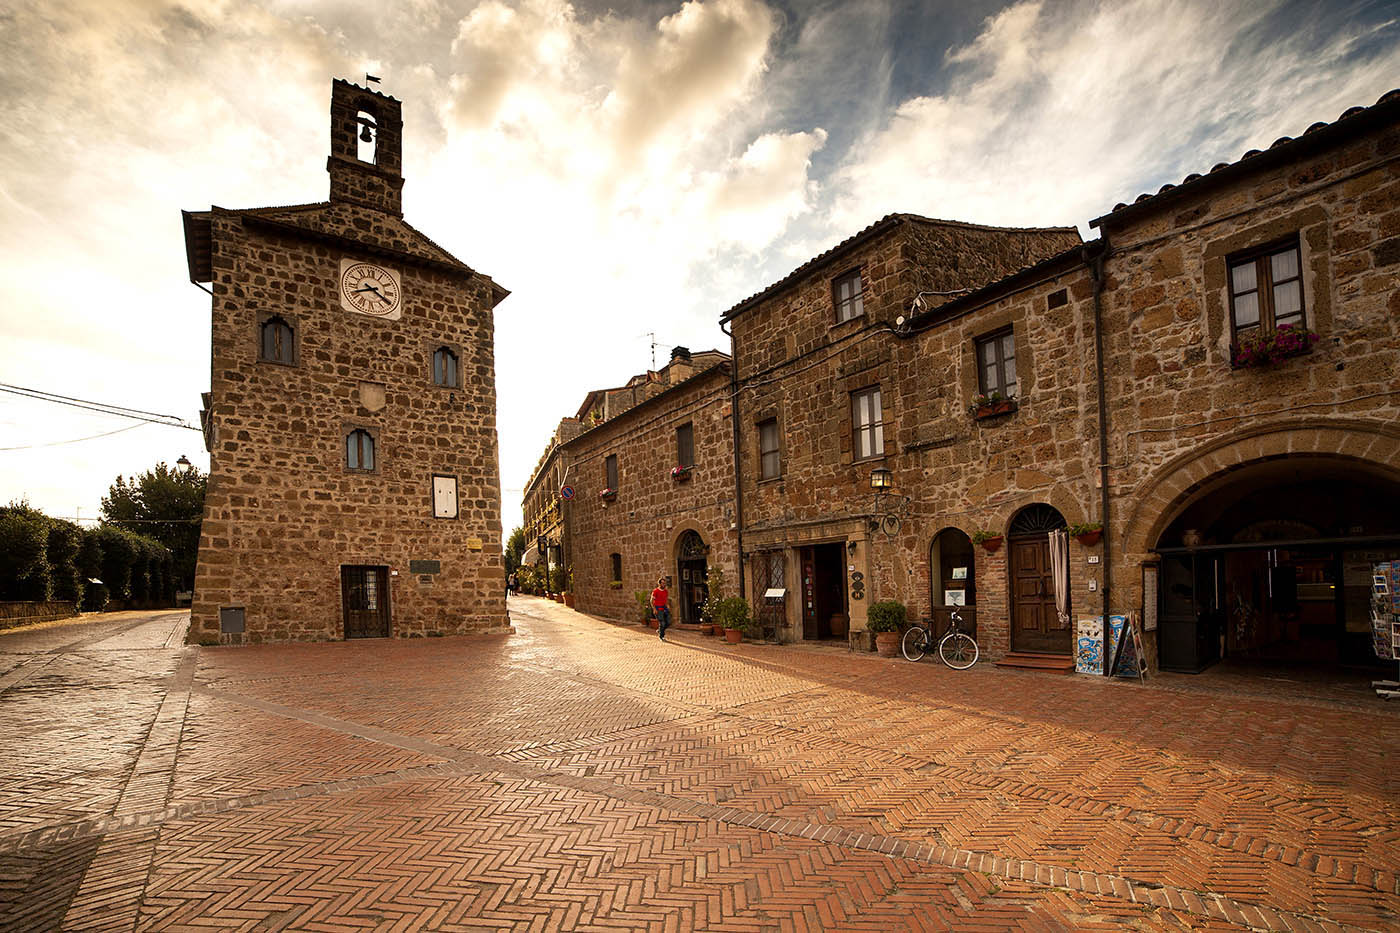 Photography of the main square in Sovana